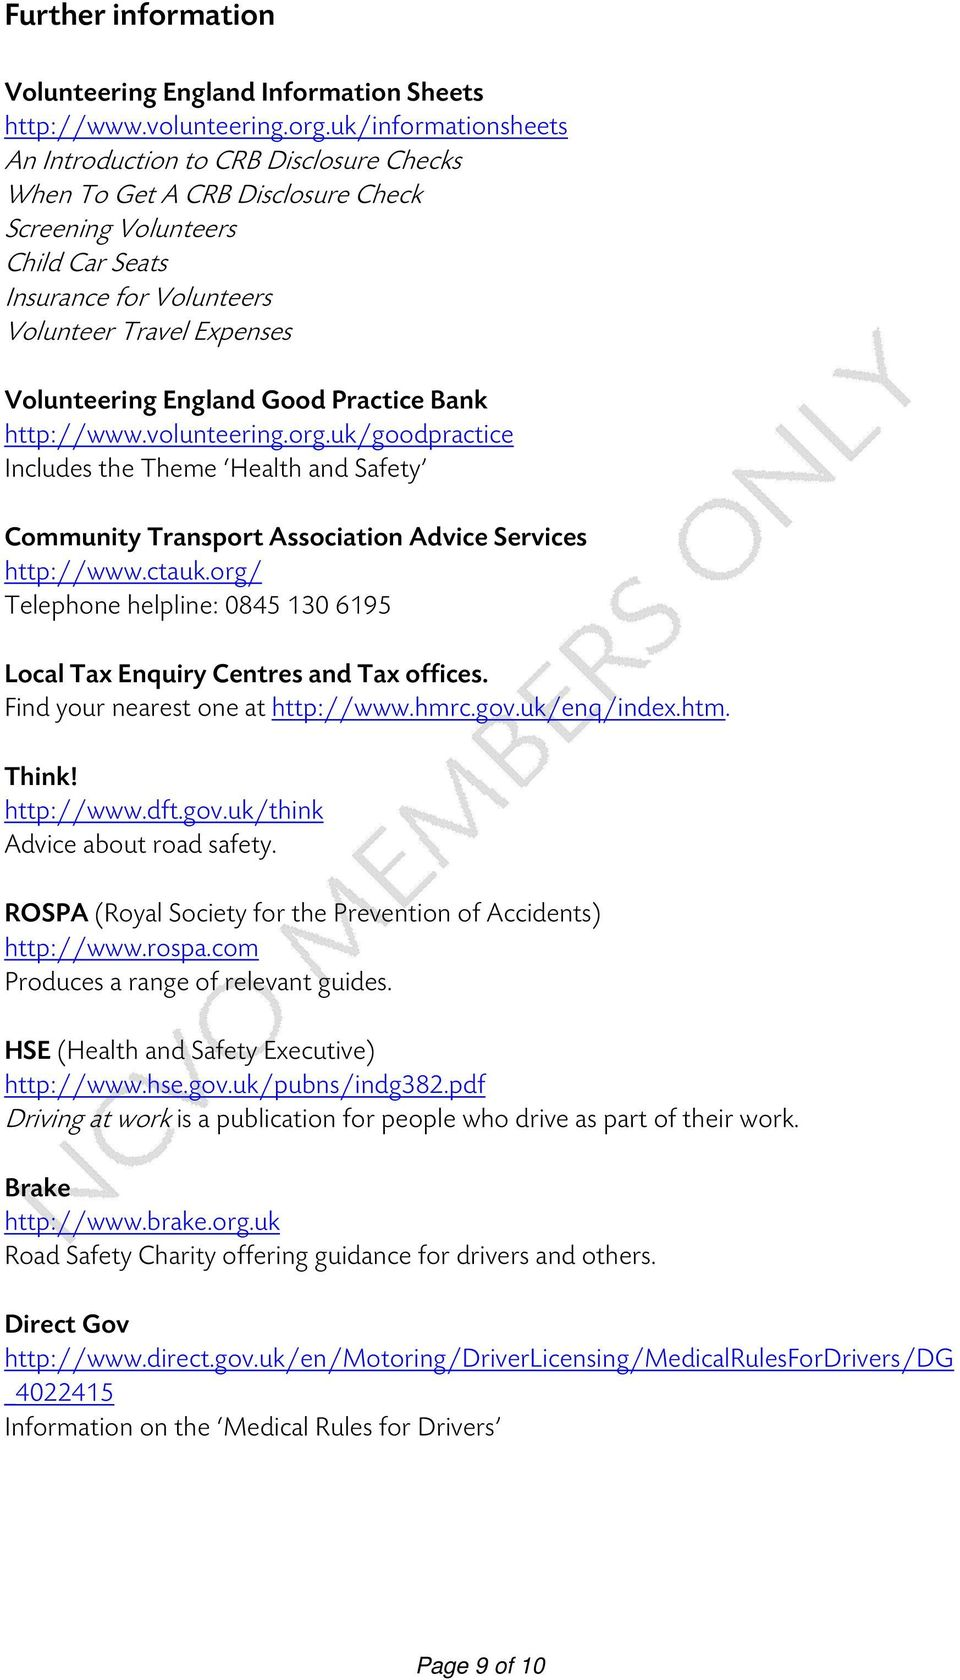 England Good Practice Bank http://www.volunteering.org.uk/goodpractice Includes the Theme Health and Safety Community Transport Association Advice Services http://www.ctauk.